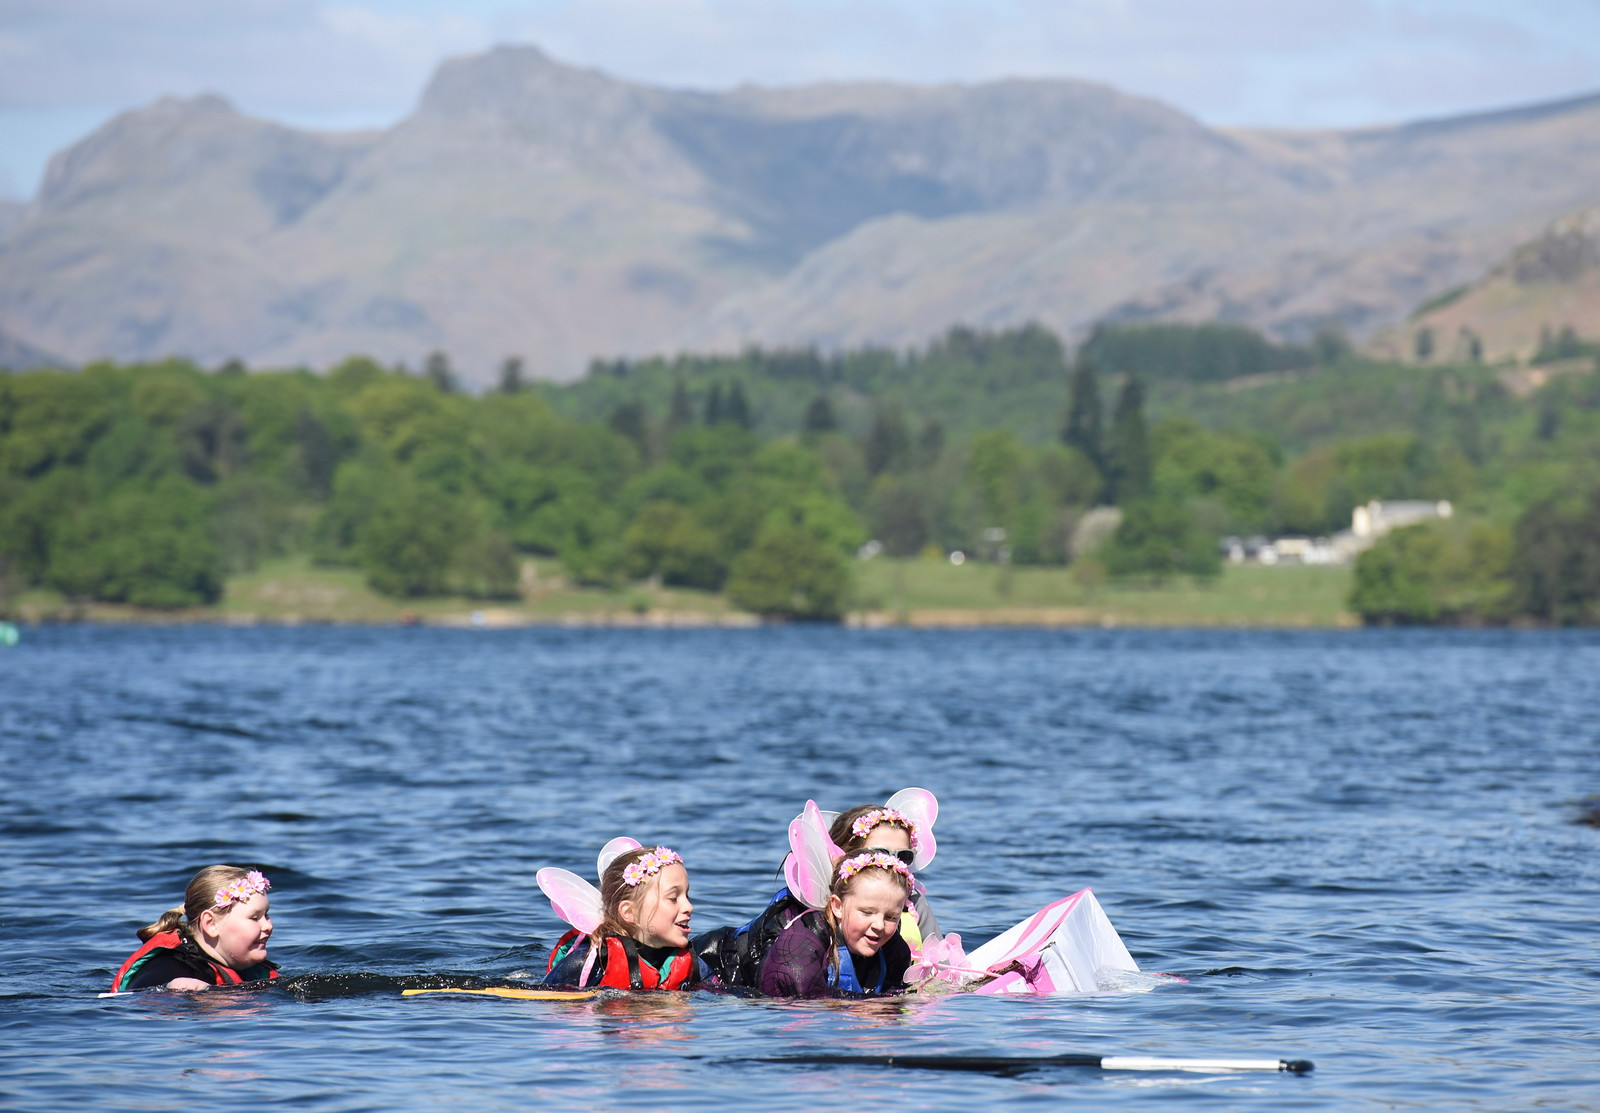 Dated: 15/05/2016 This is the bizarre sight of boats made entirely of CARDBOARD sailing across Lake Windermere against the scenic backdrop of the majestic fells. FAO: Benjamin Berry - English Lakes